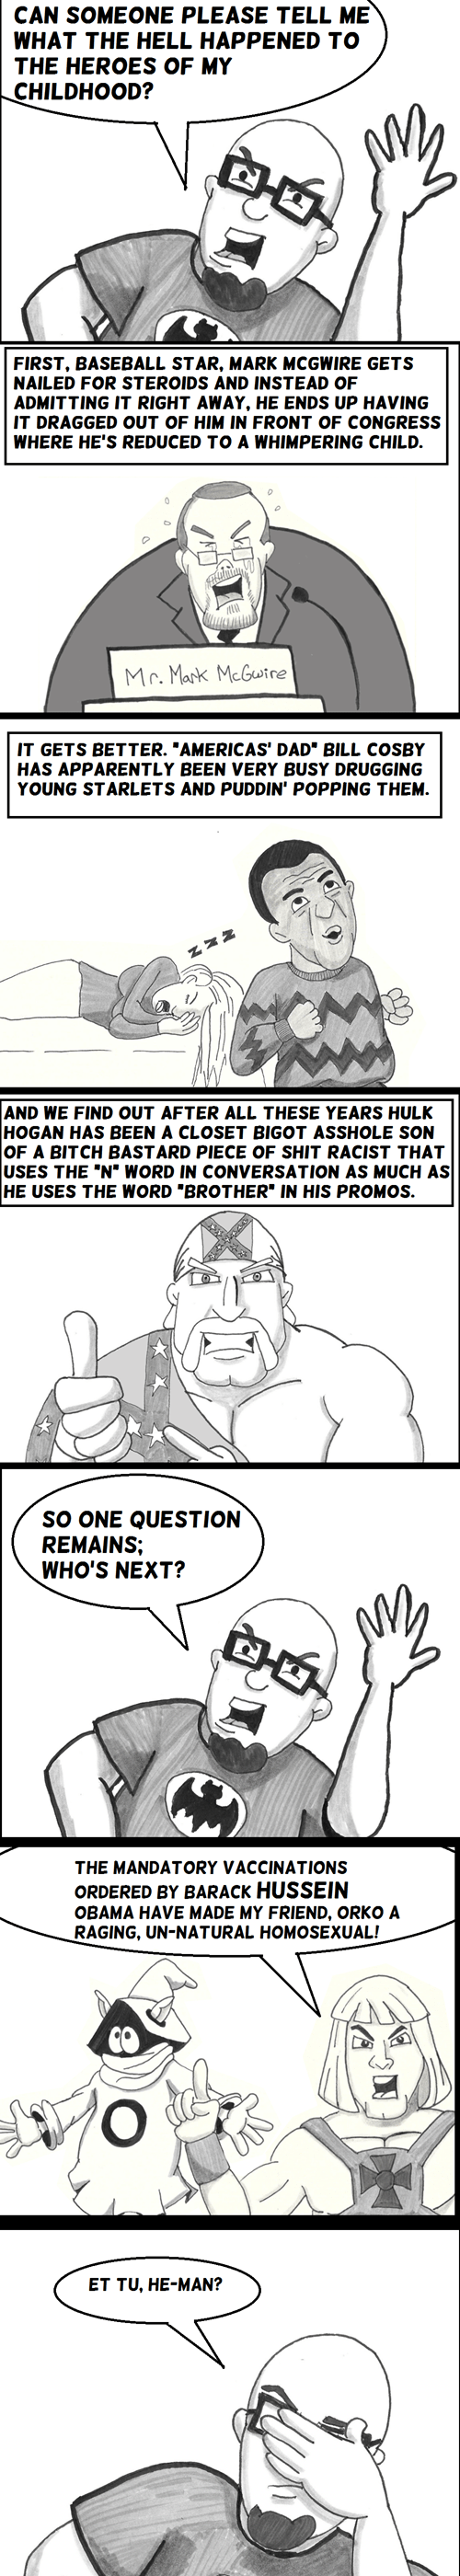 racism,Hulk Hogan,bill cosby,sad but true,he man,orko,web comics